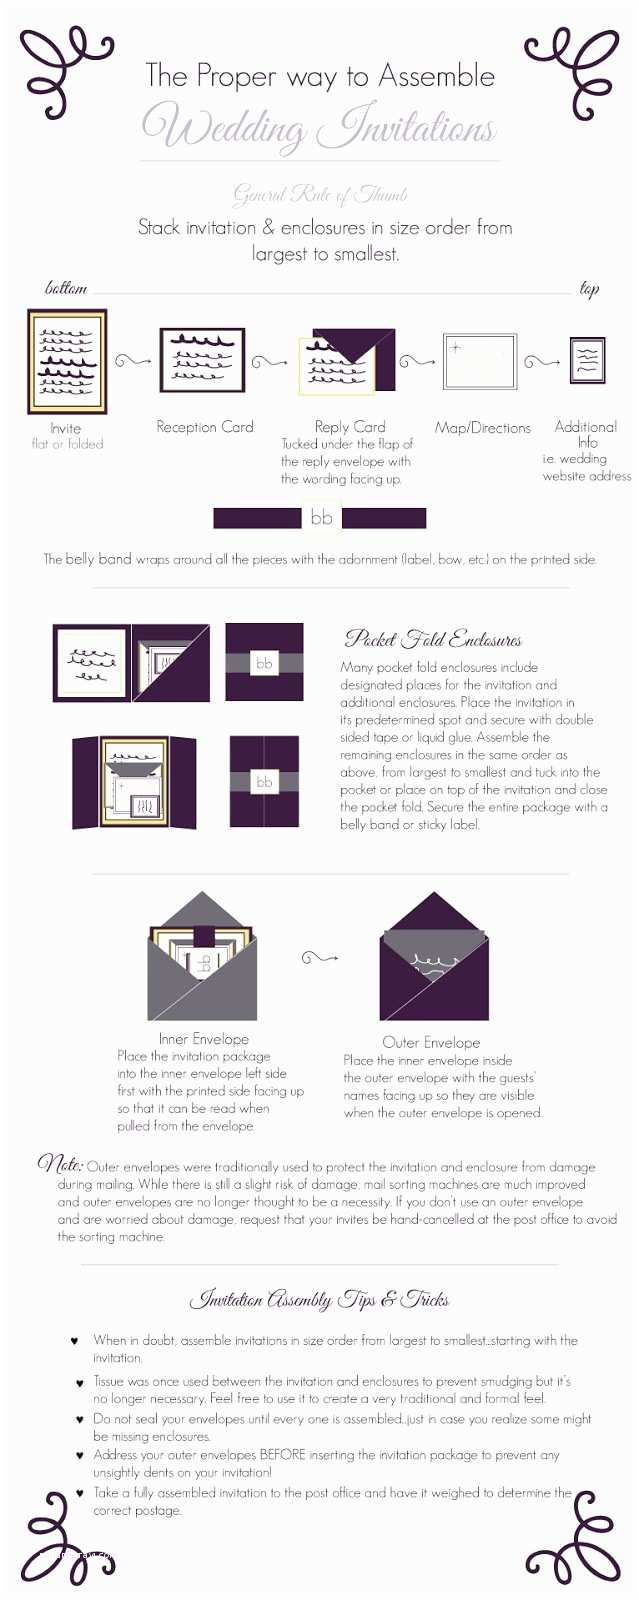 Correct Wording for Wedding Invitations the Proper Way to assemble Wedding Invitations Free